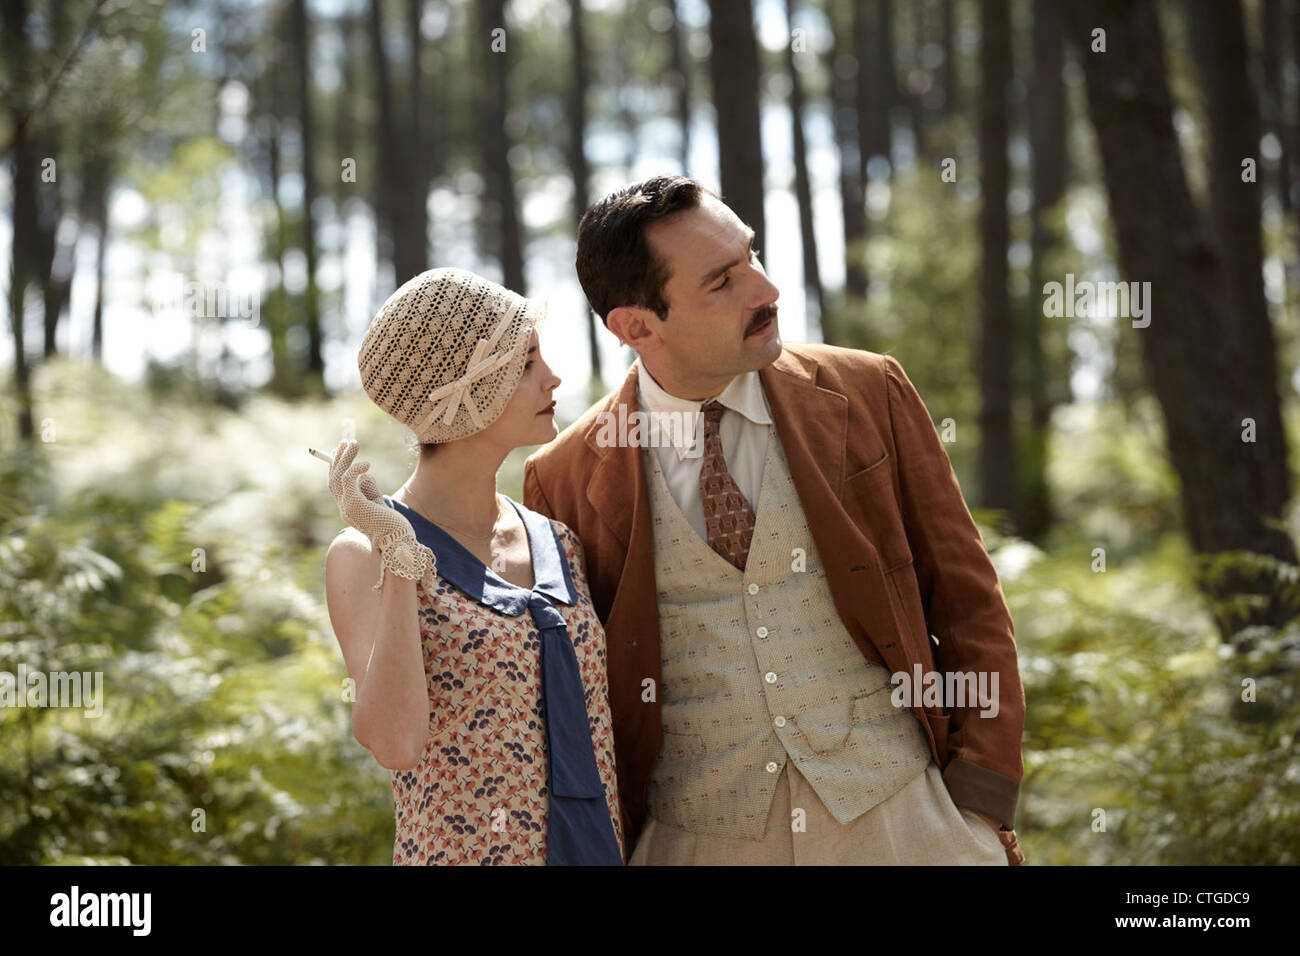 THERESE DESQUEYROUX (2012) AUDREY TAUTOU, GILLES LELLOUCHE, CLAUDE MILLER (DIR) 005 MOVIESTORE COLLECTION LTD - Stock Image